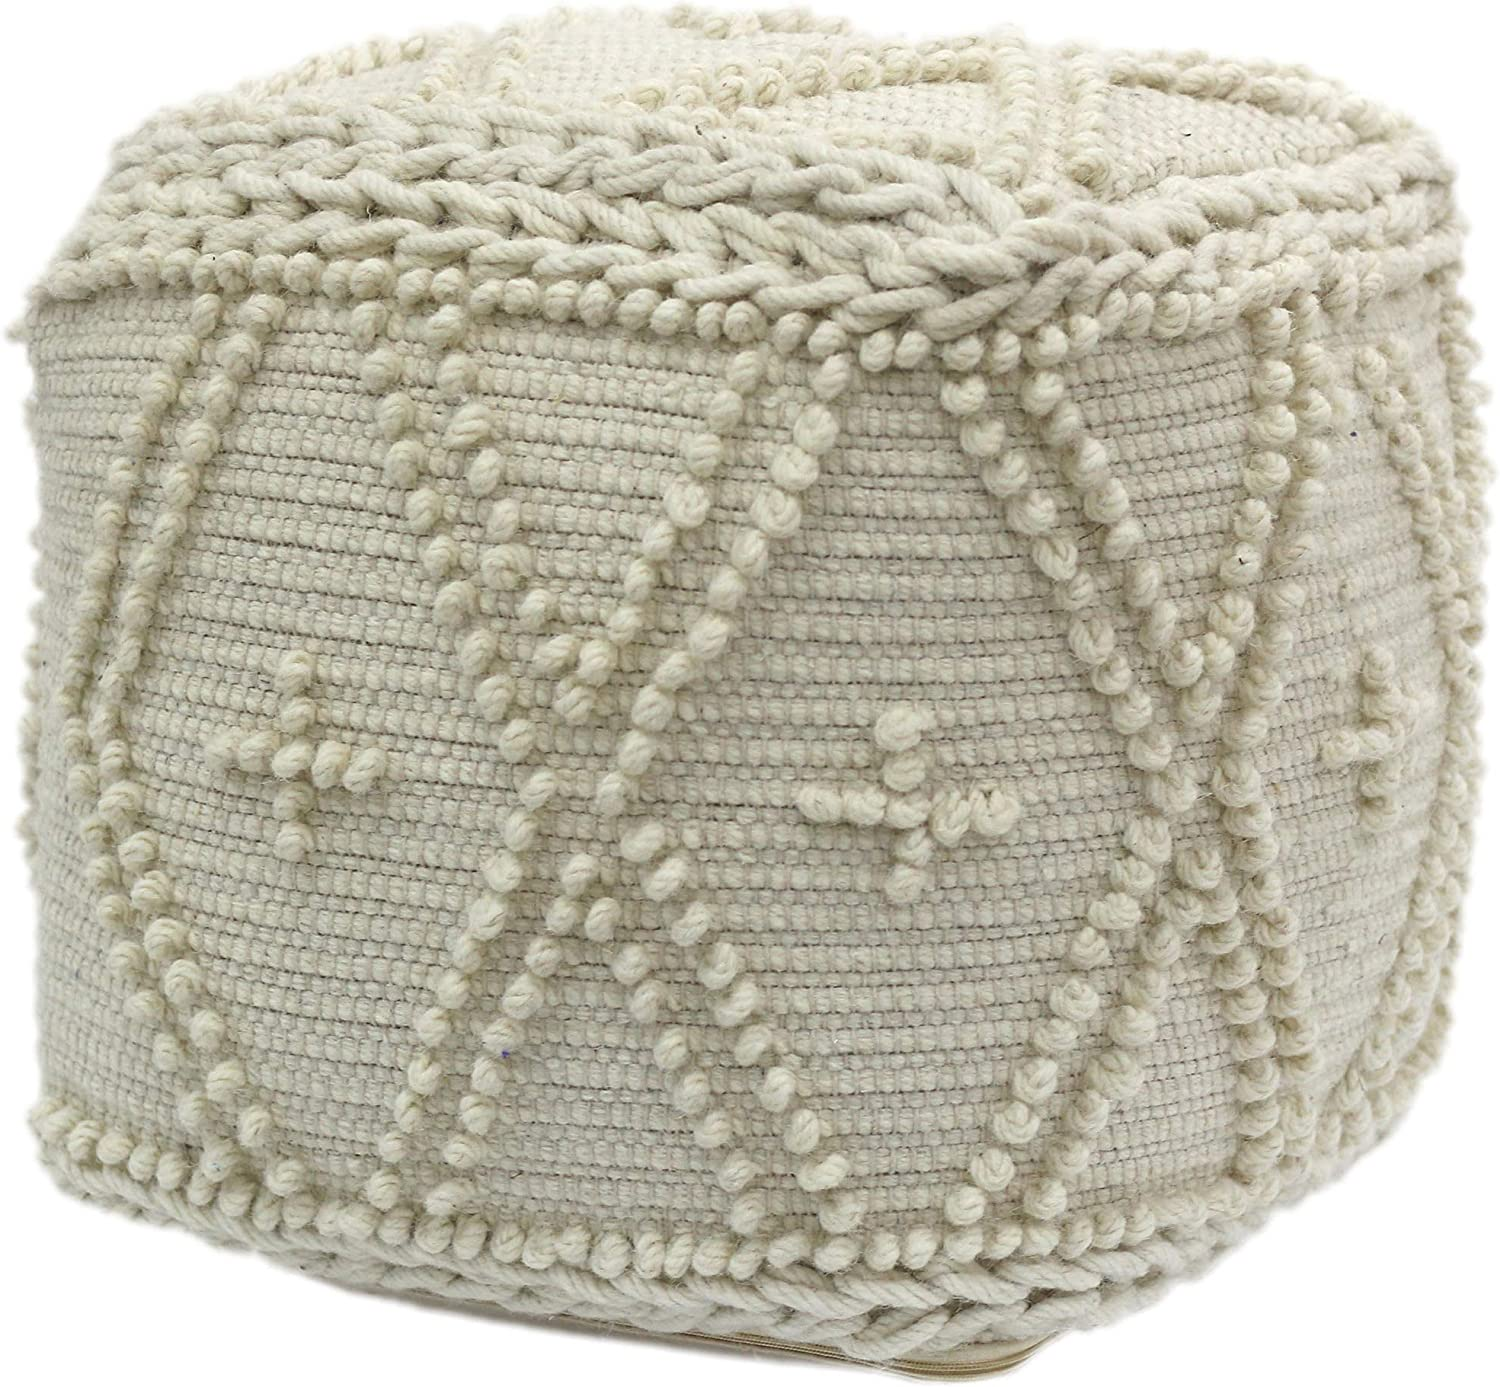 Christopher Knight Home Truda Cube Pouf, Boho, White Wool and Cotton